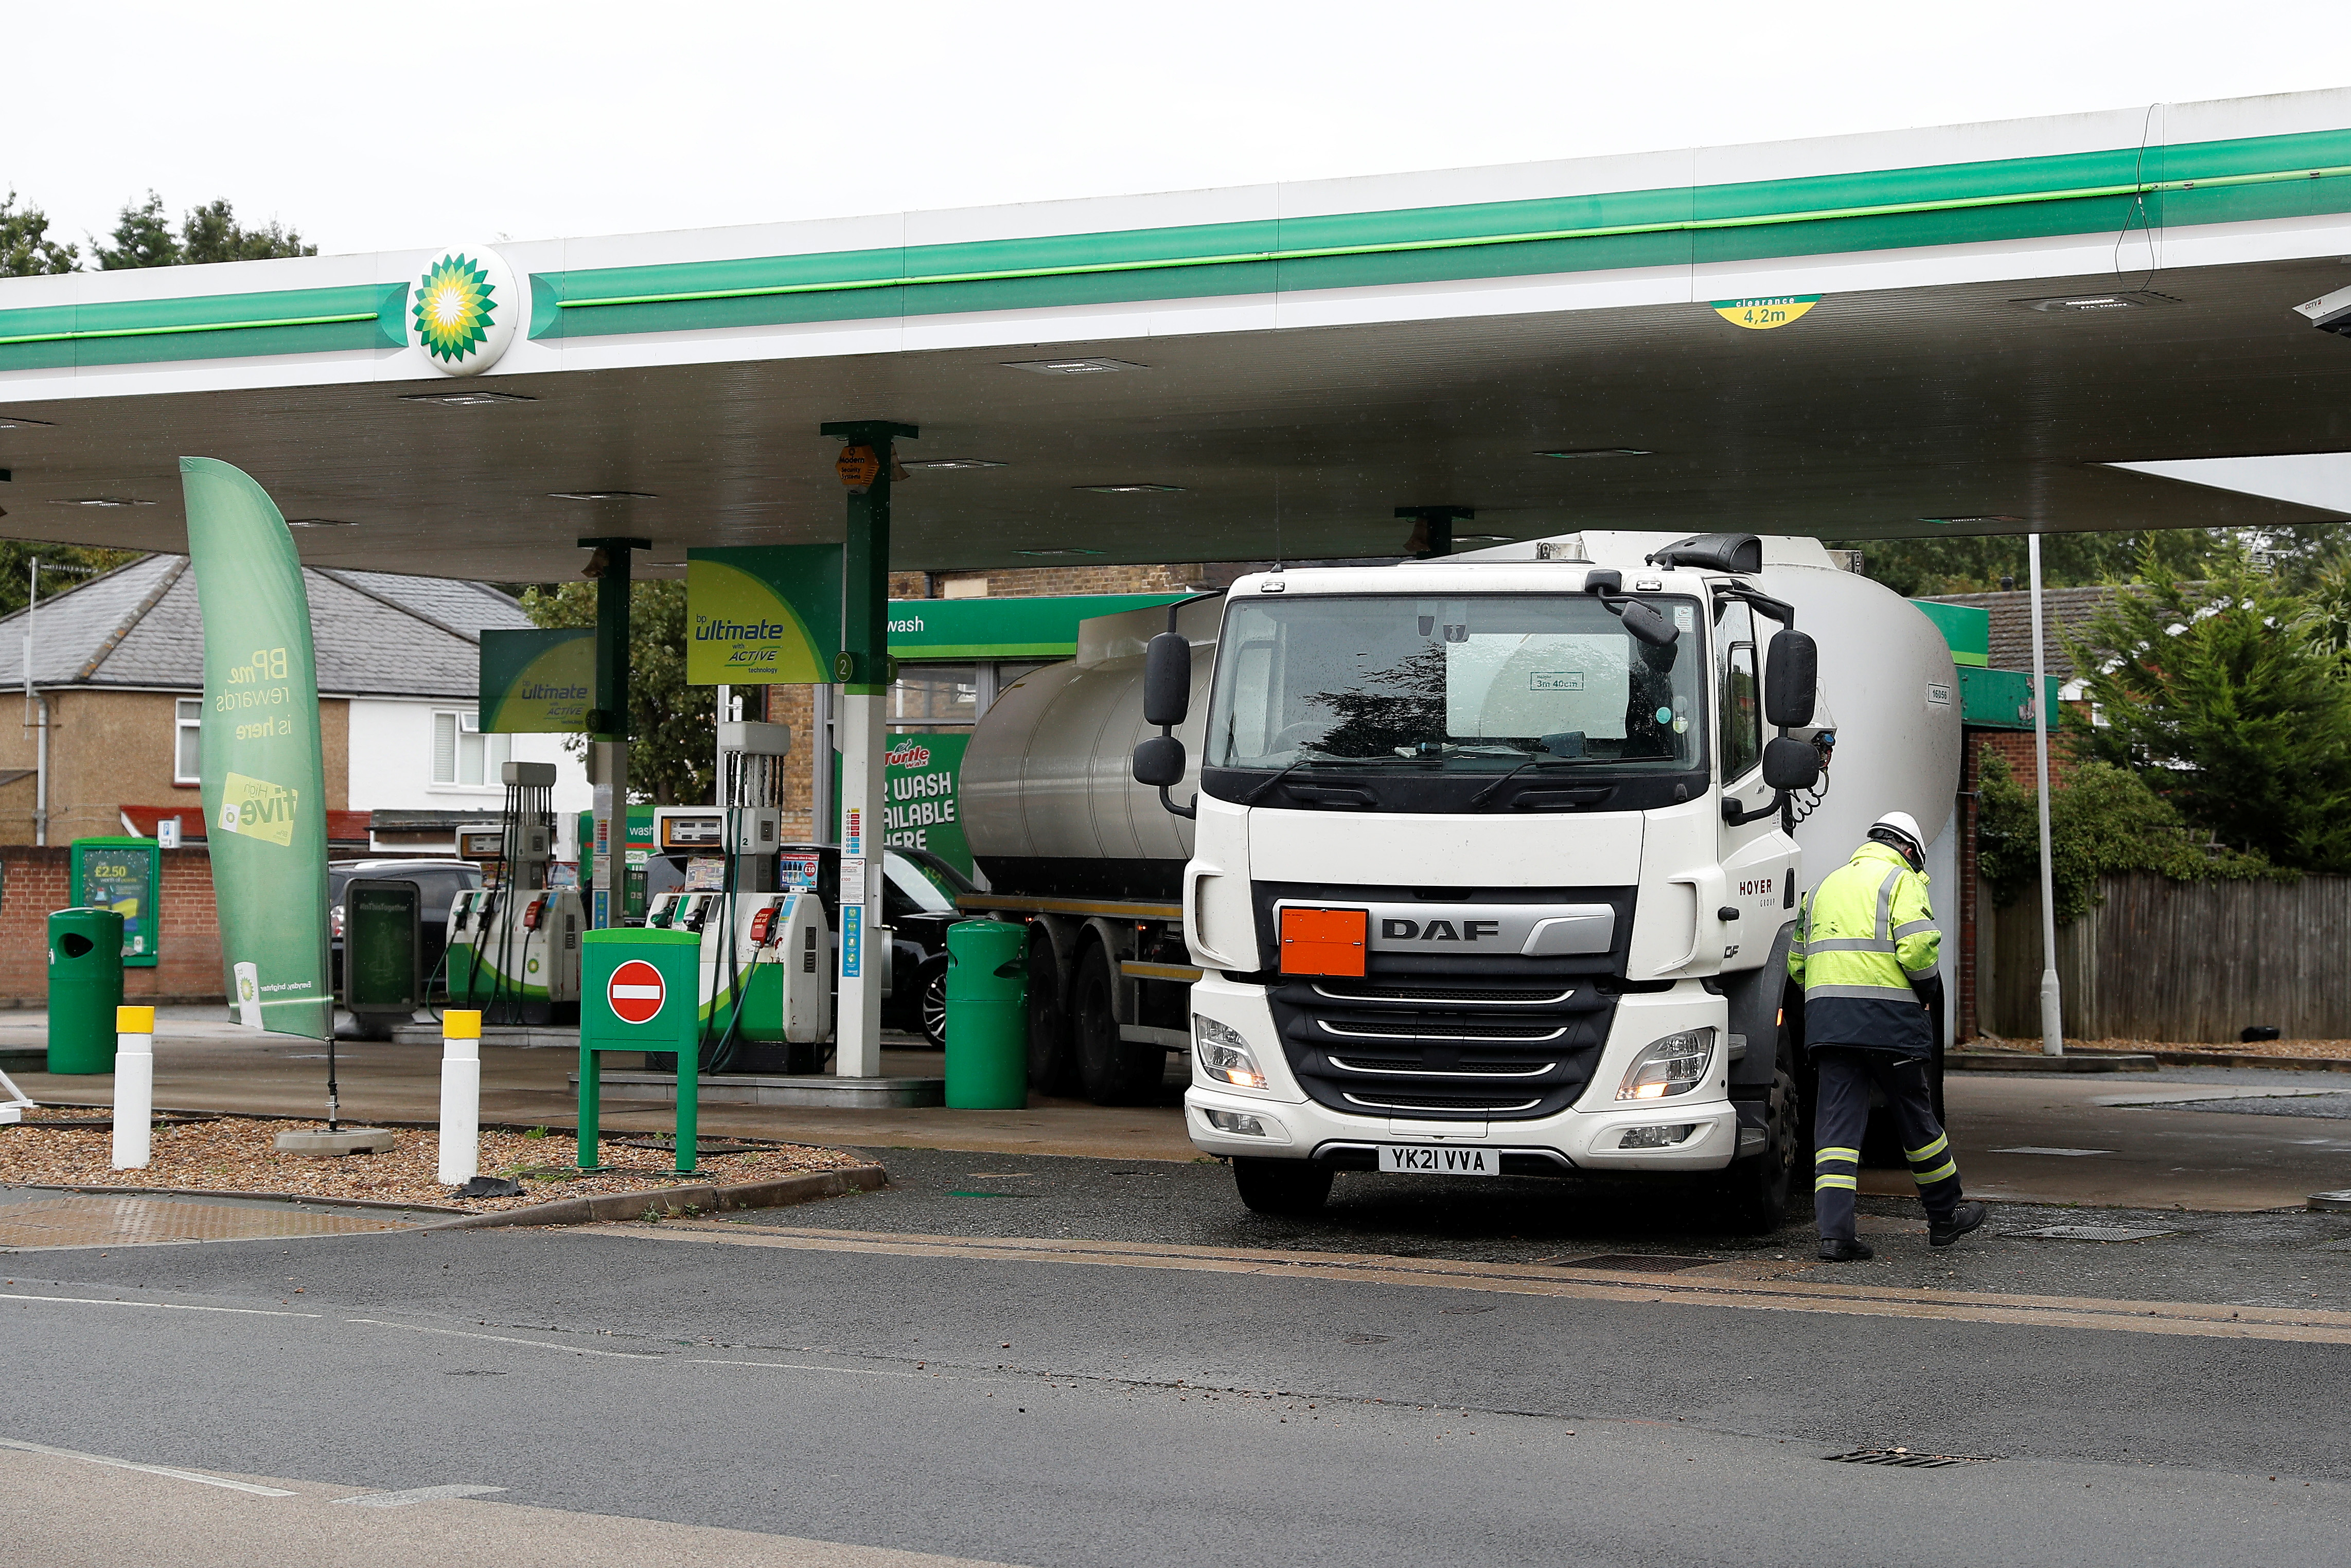 A driver walks past his tanker after completing a fuel delivery to a BP filling station in Hersham, Britain, September 30, 2021. REUTERS/Peter Nicholls